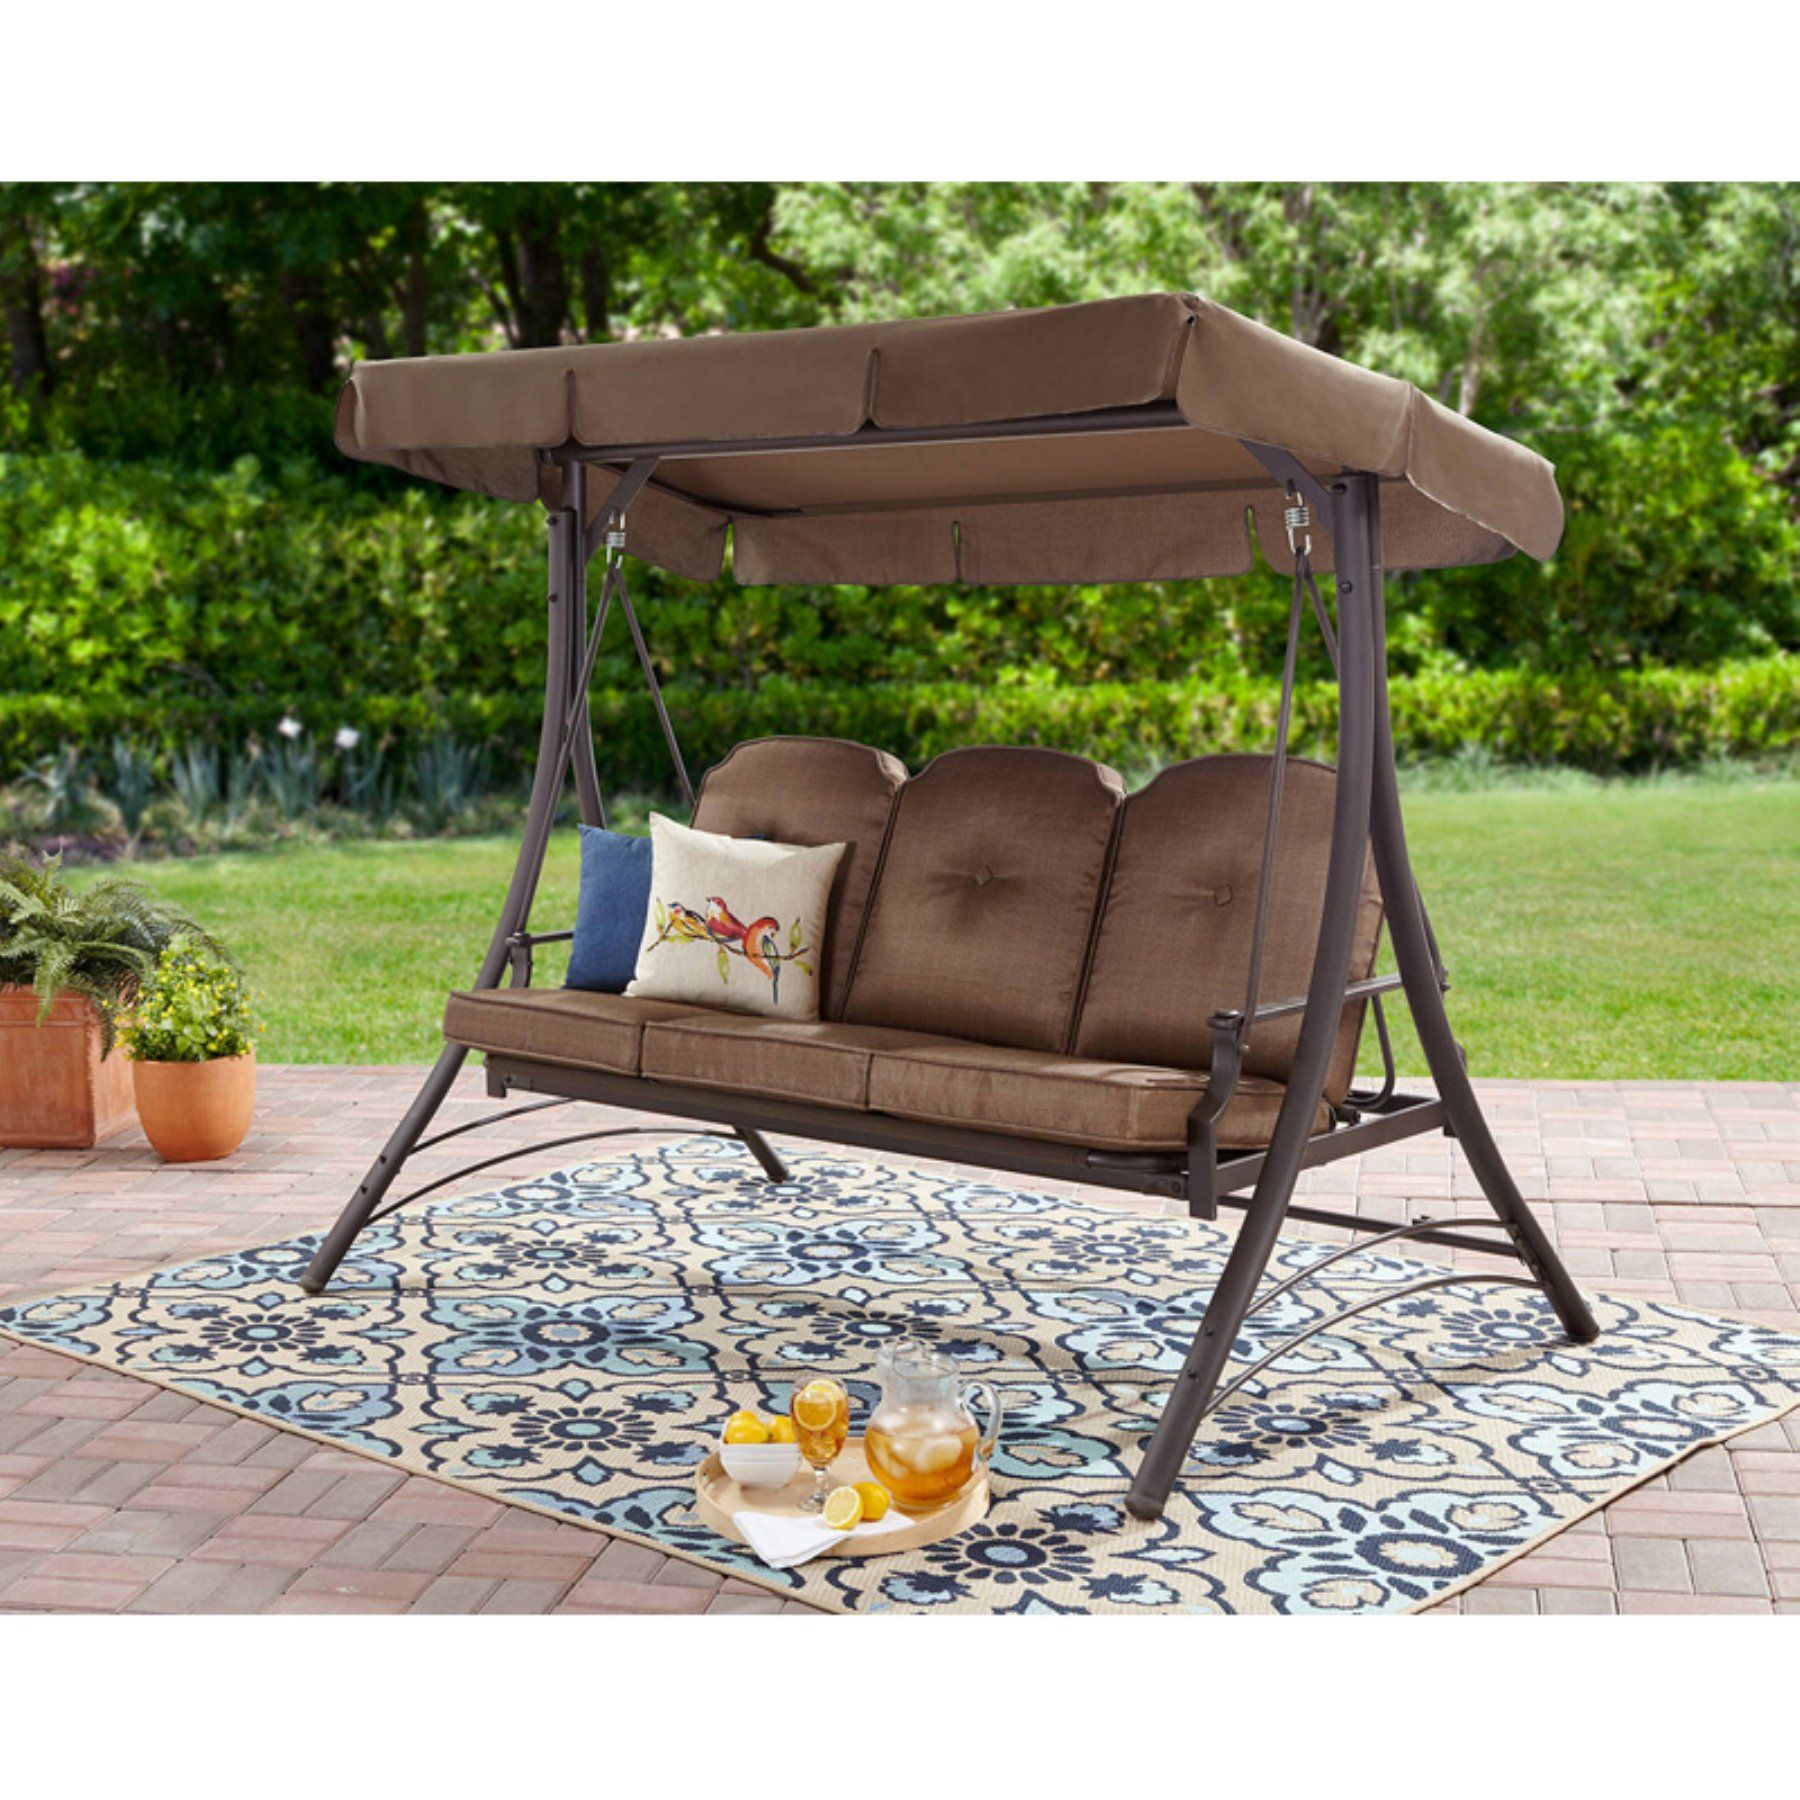 Mainstays Wentworth 3 Person Porch Swing Frame Set With Regarding 3 Seats Patio Canopy Swing Gliders Hammock Cushioned Steel Frame (Image 18 of 25)